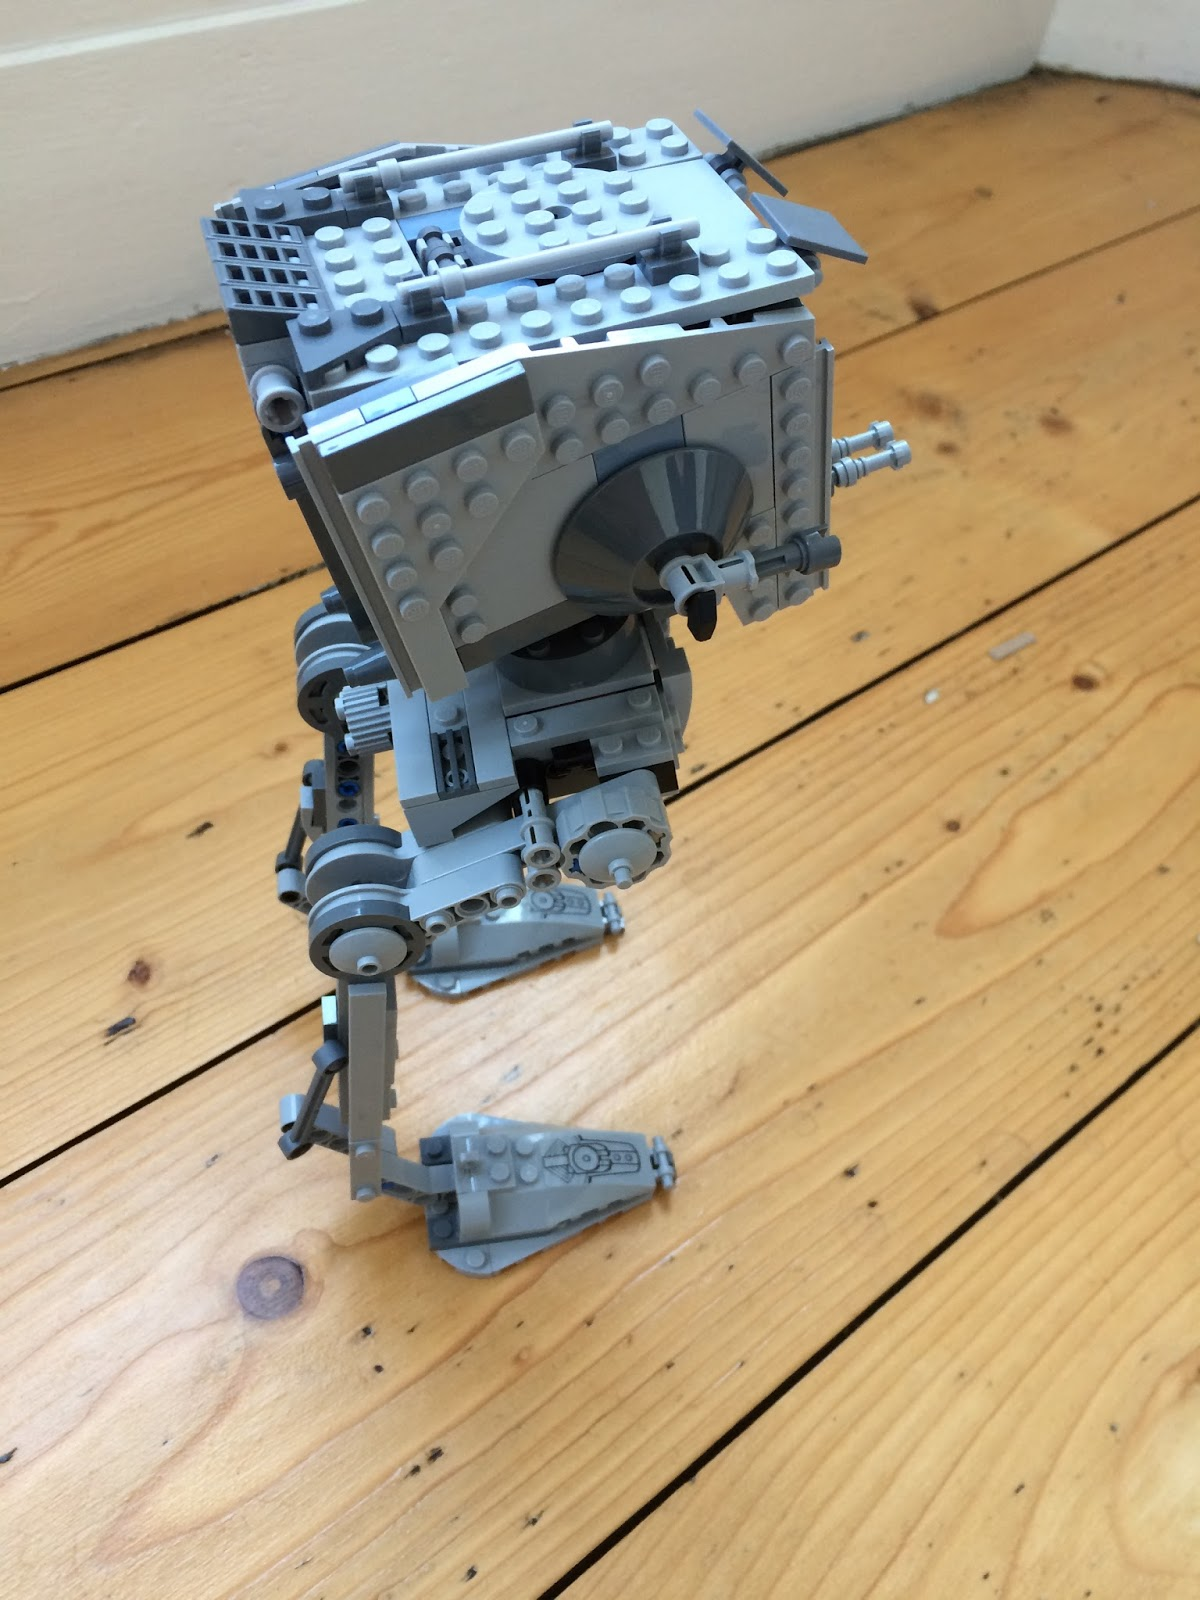 Lego 75153 Star Wars AT-ST Walker Building Set side view